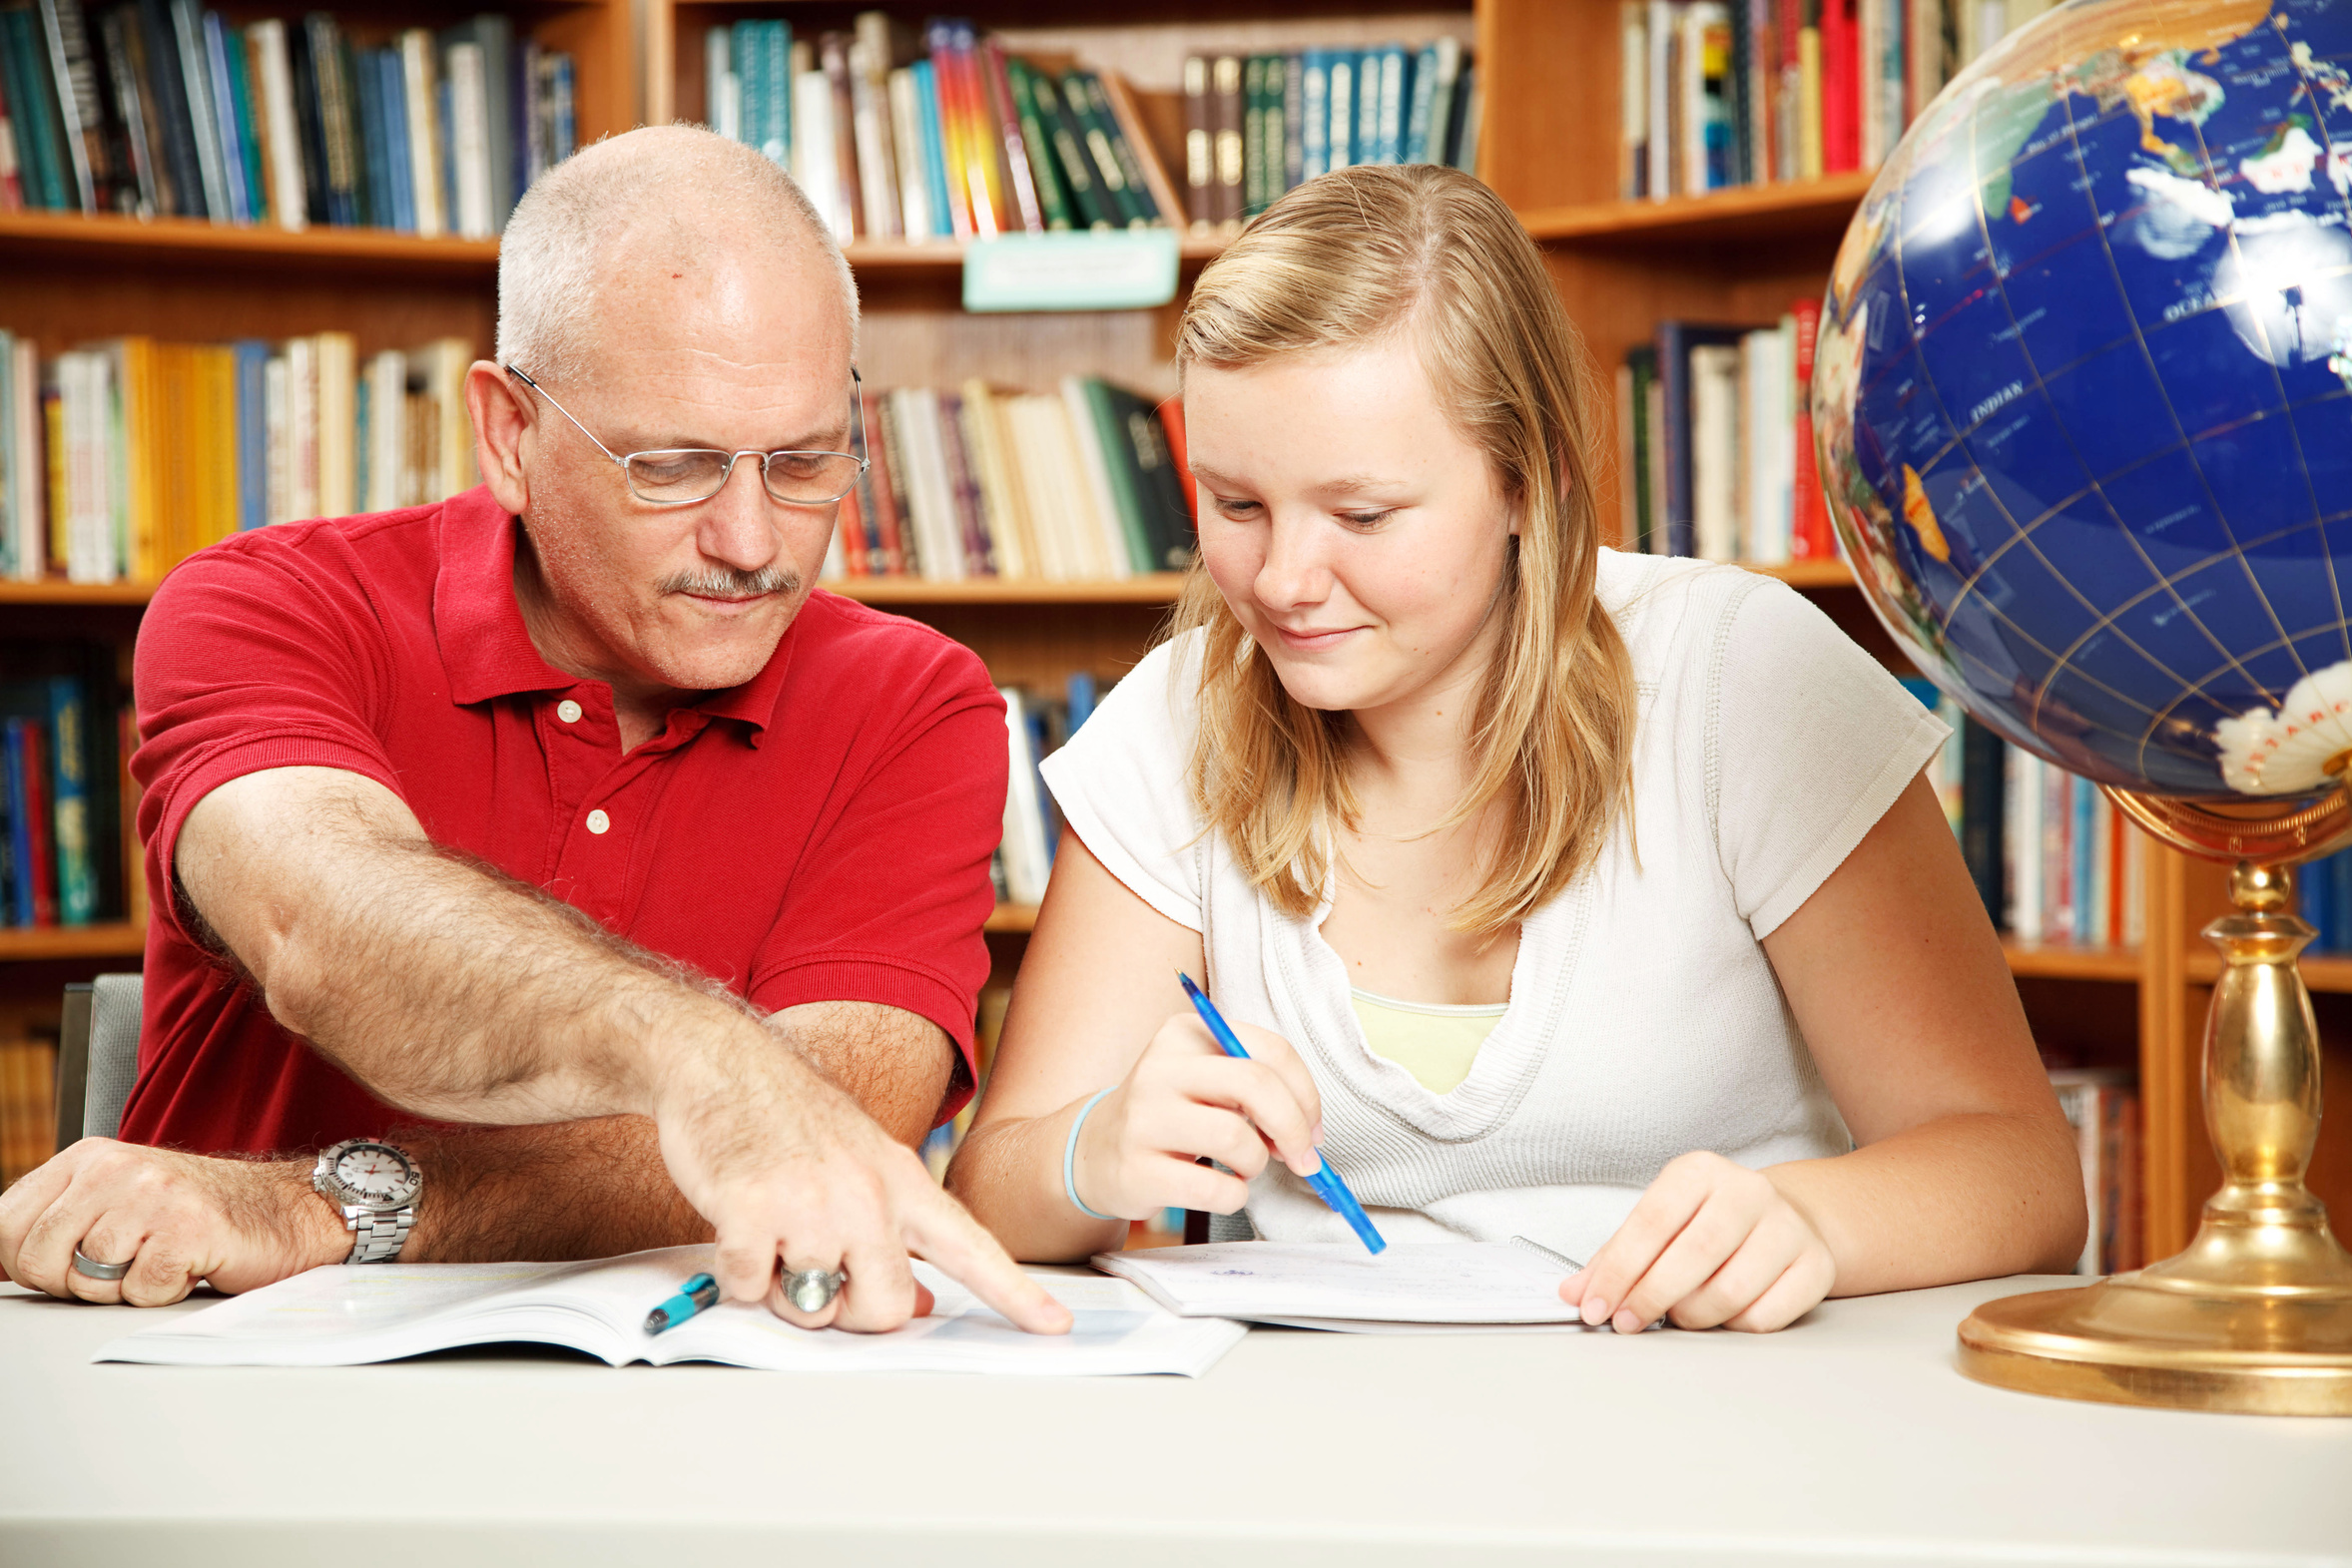 Family Literacy: Lifelong Learning Across Generations